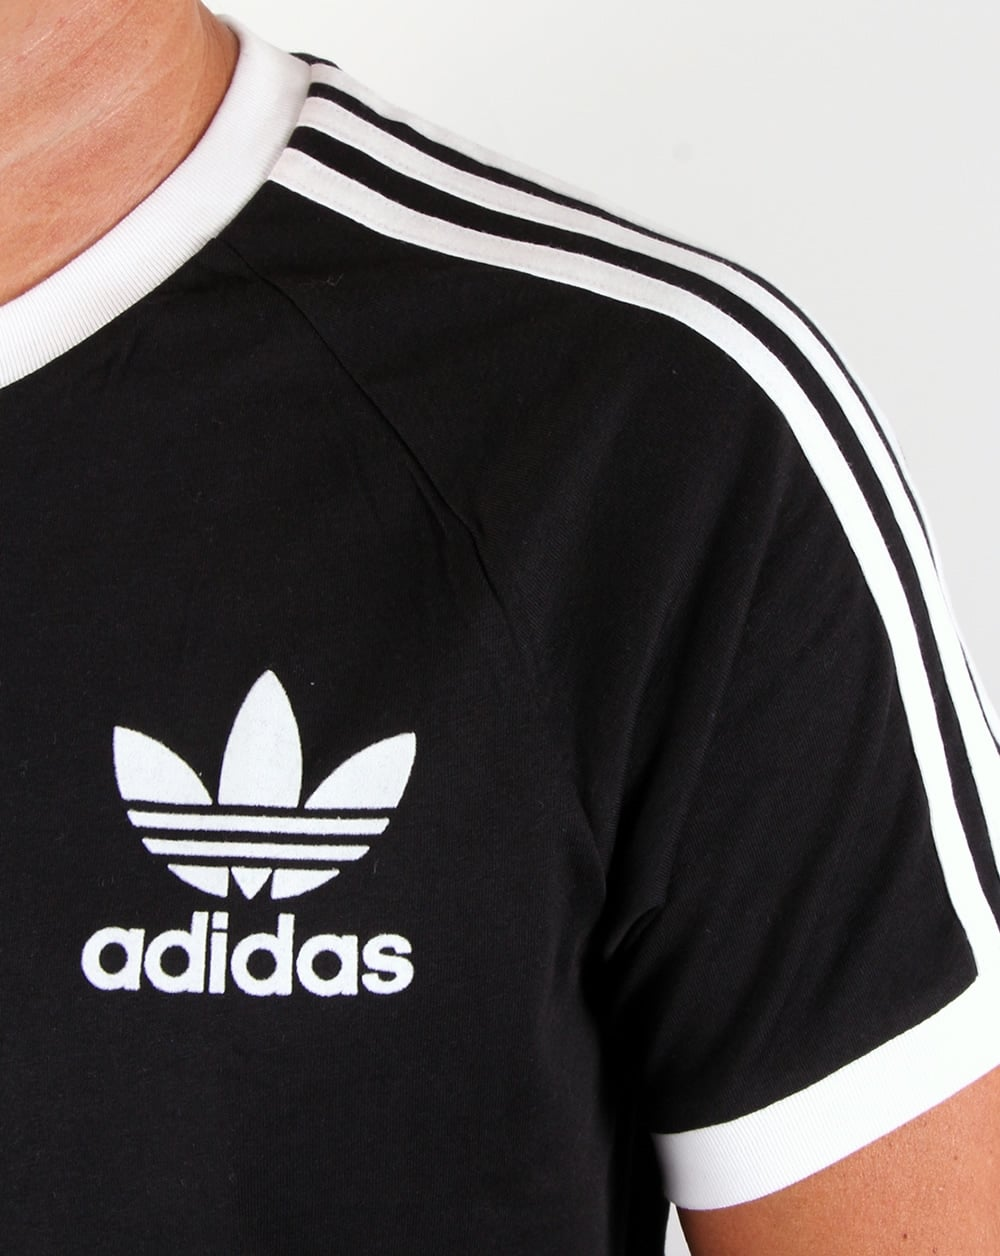 Adidas t shirt black white - Adidas T Shirt Black White 37